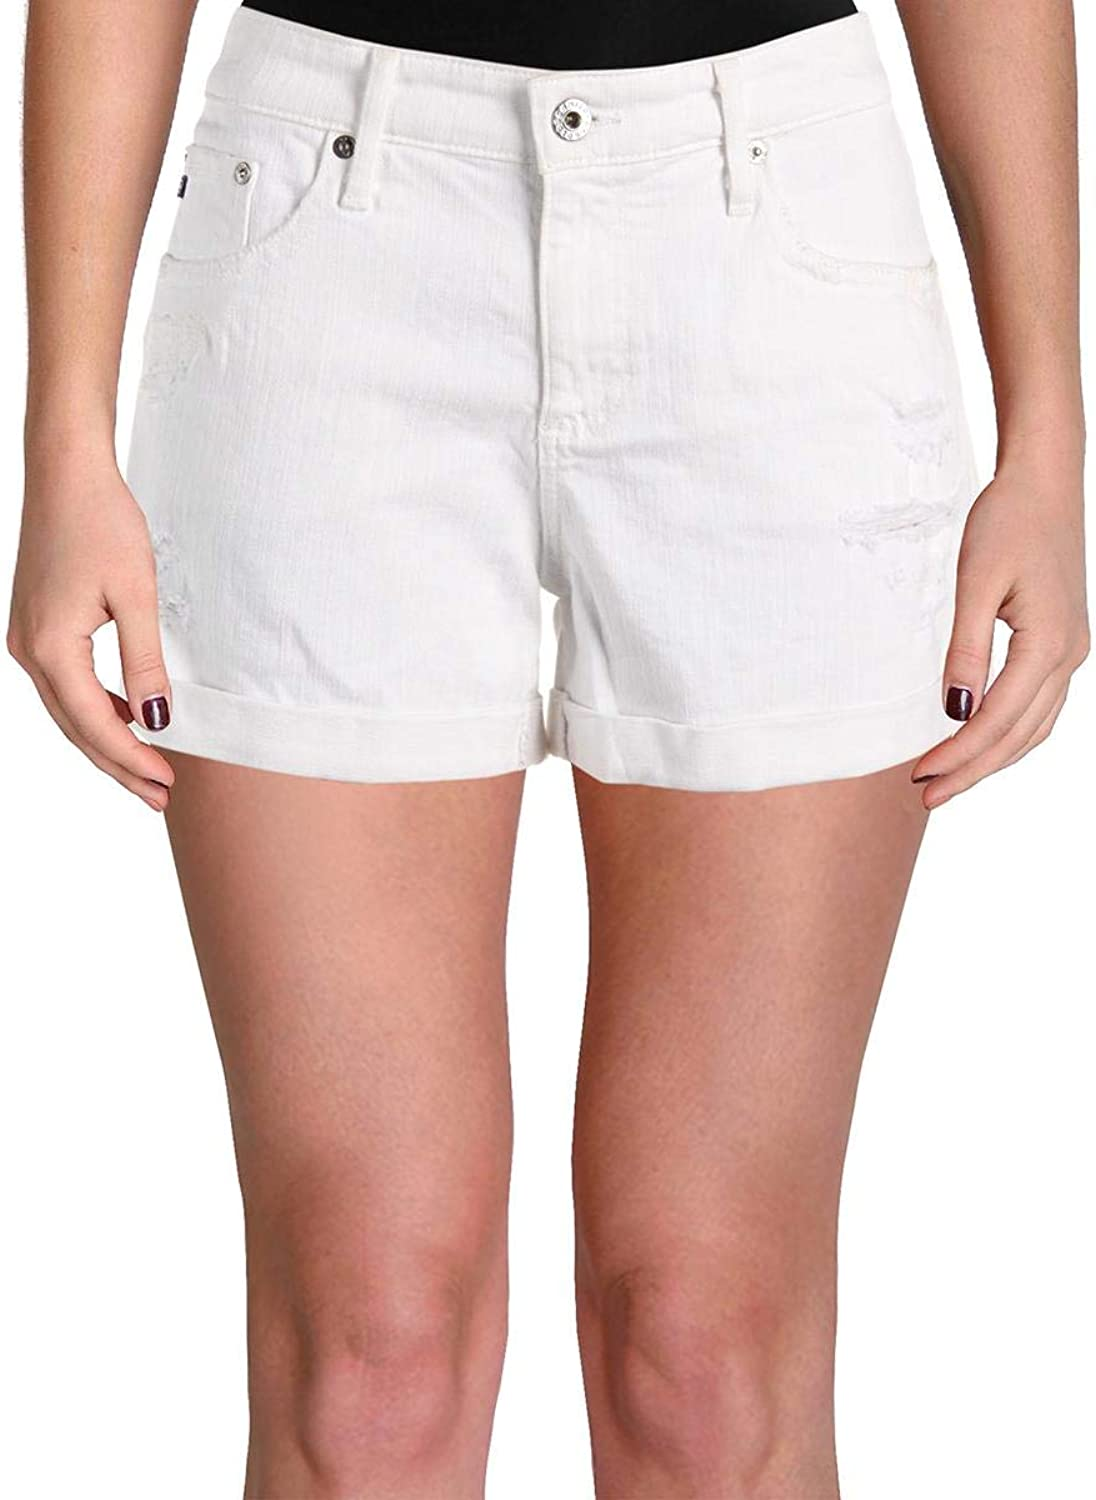 Adriano goldschmied Womens Hailey Flat Front Casual Denim Shorts Ivory 31